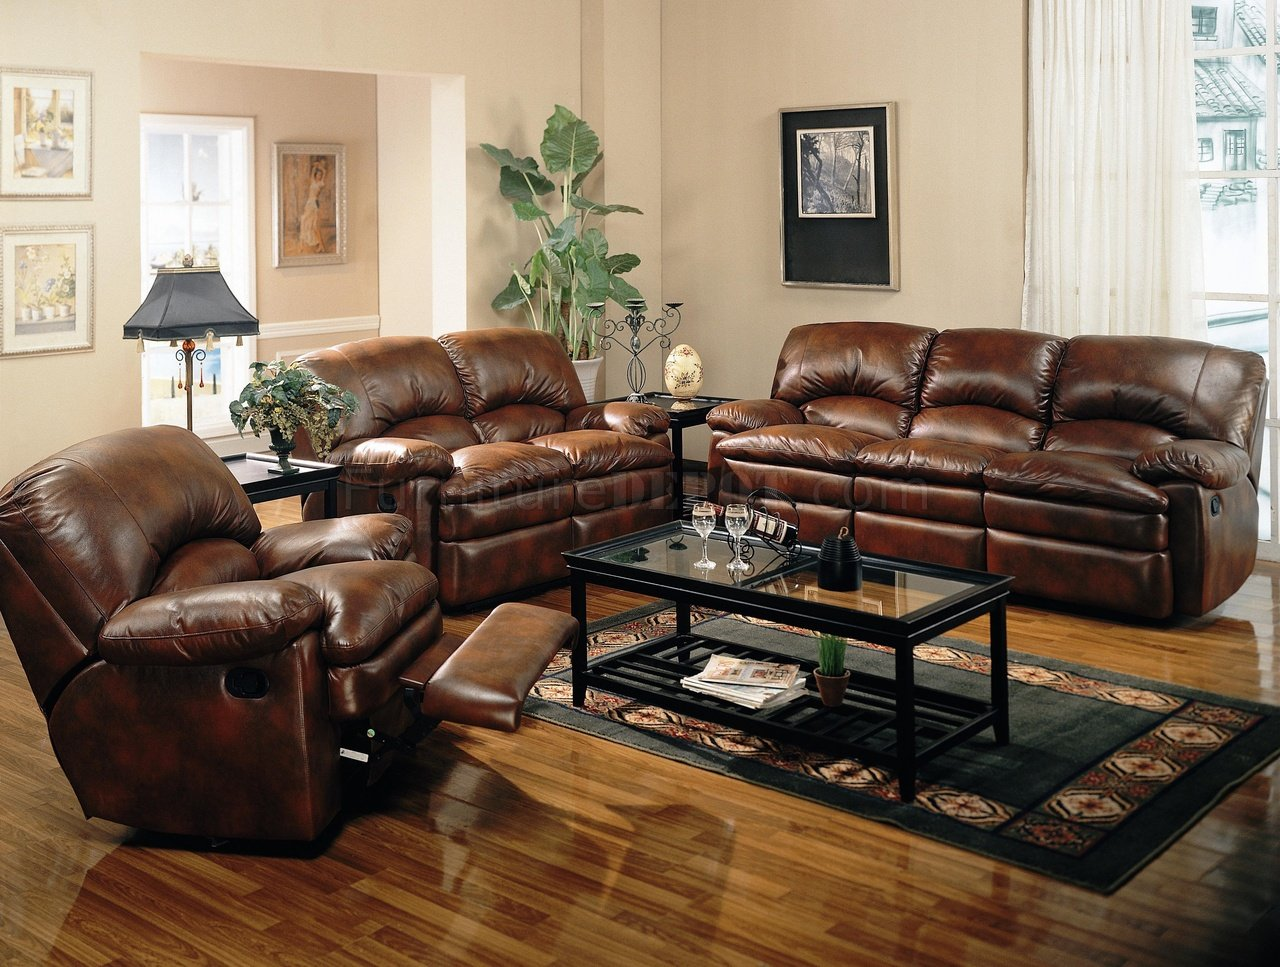 Rich Brown Bonded Leather Modern Reclining Sofa W/Options